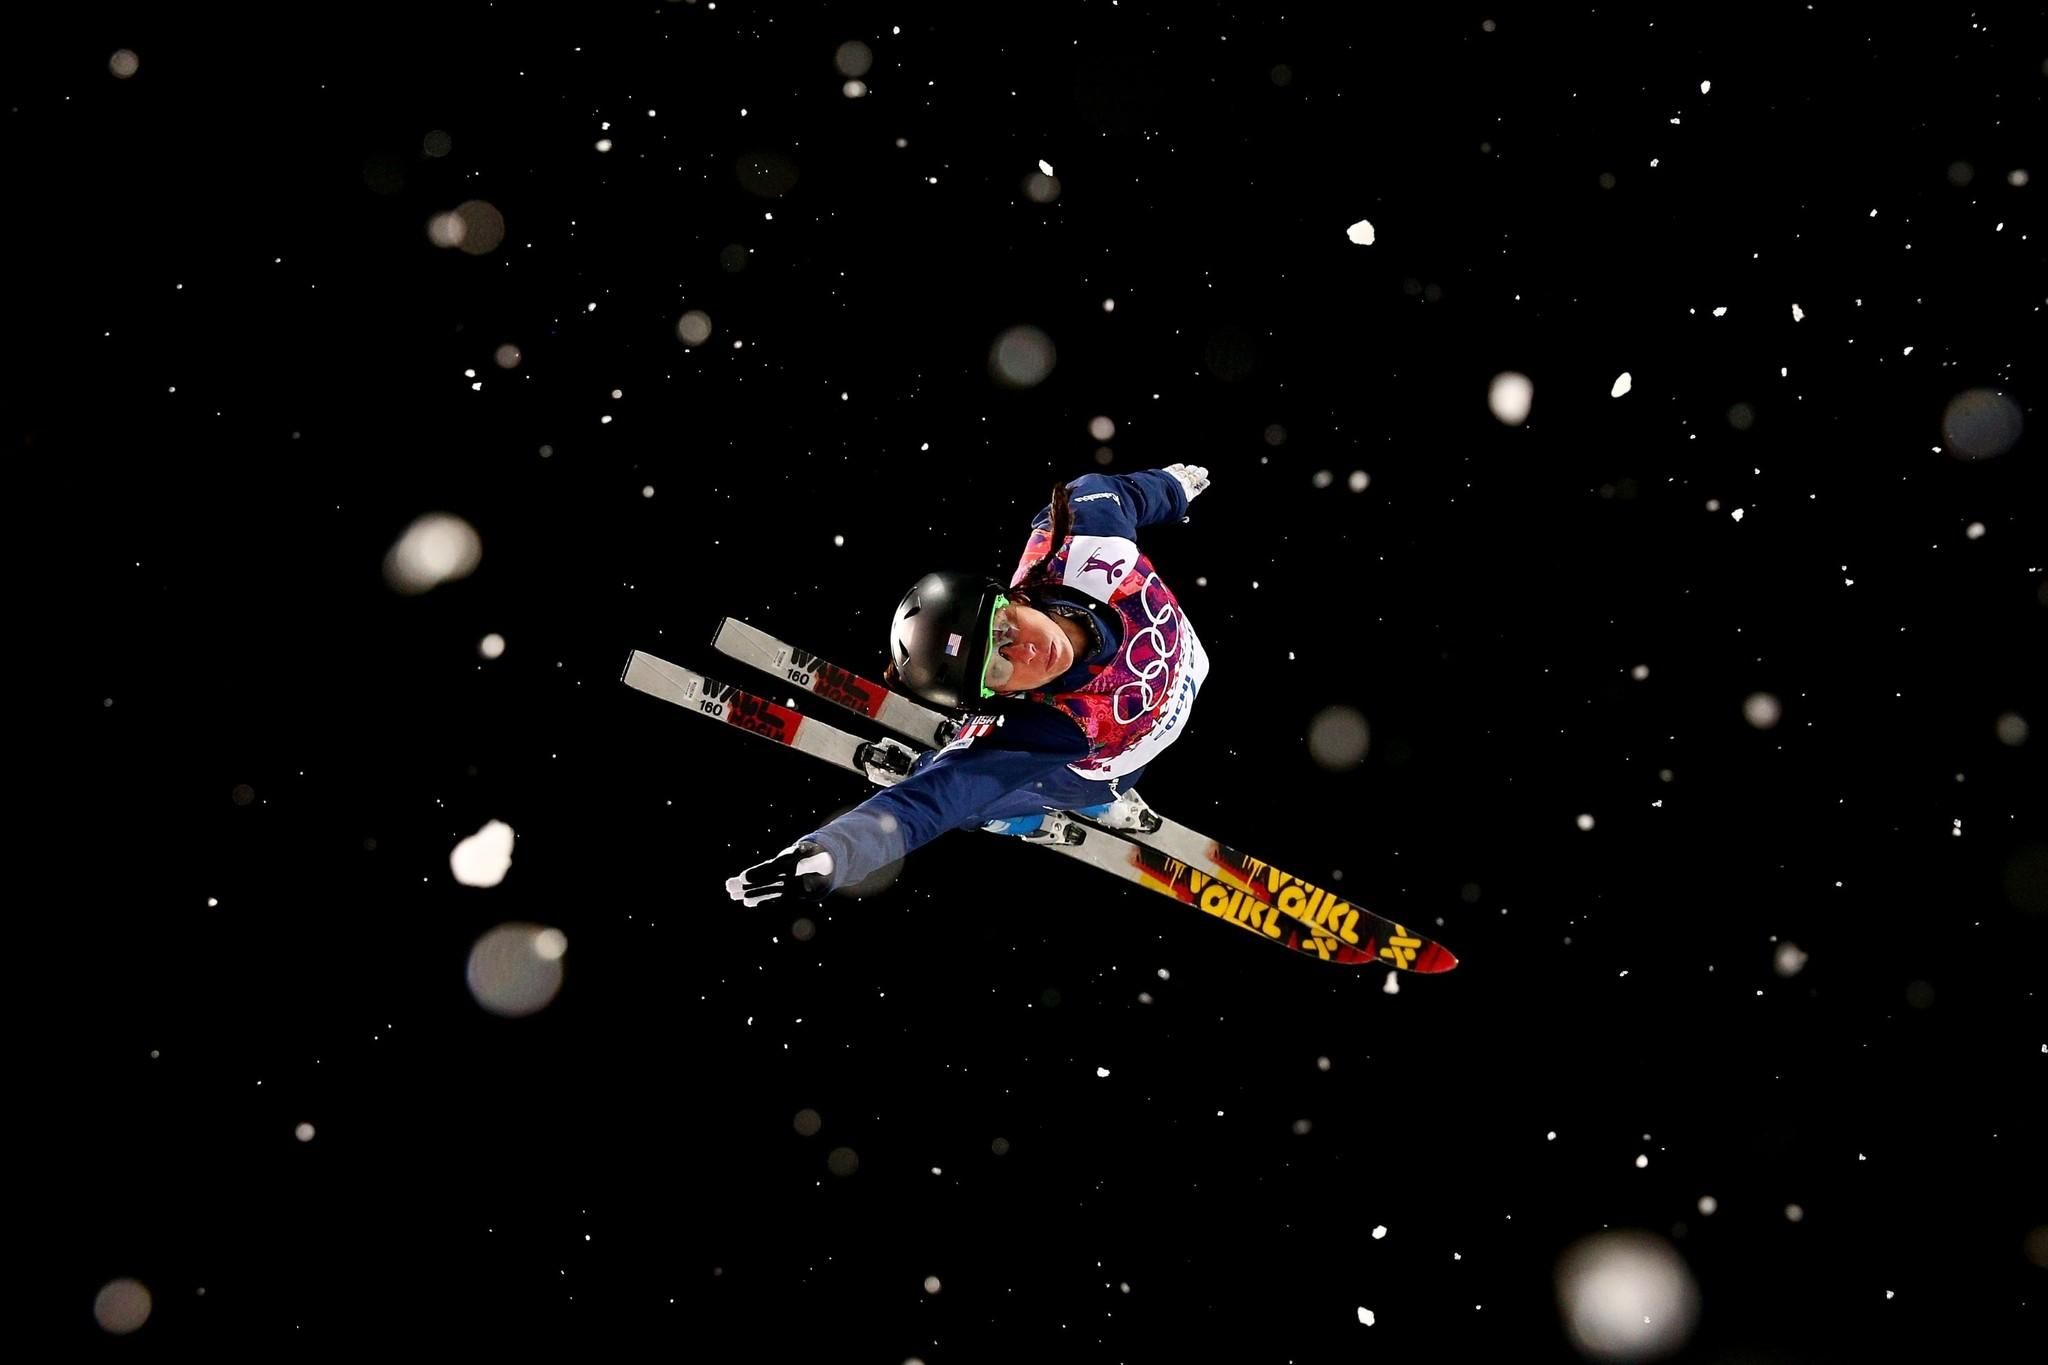 Emily Cook sails through the air during a practice run for the freestyle skiing ladies' aerials finals Friday. Cook did not advance past the first round of the finals.